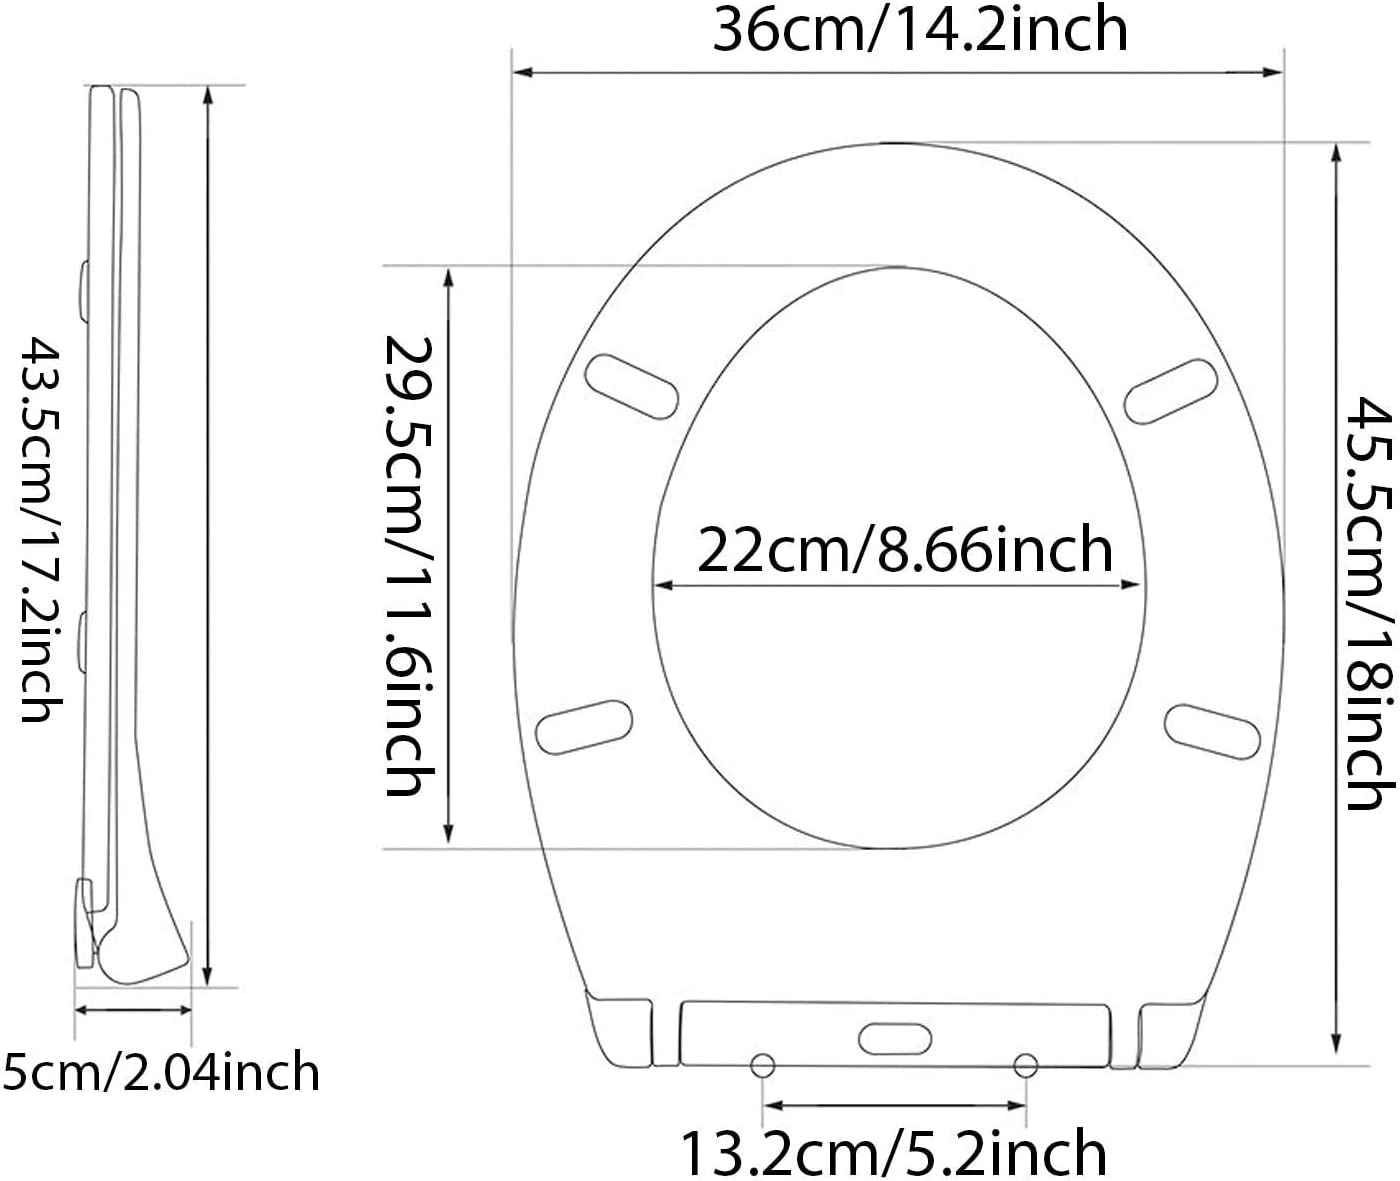 Automatic Lowering,Ergonomic Design with Stainless Steel Hinges Simple Top Fixing AEE LIFV Soft Close Quick Release Toilet Seat O Shape